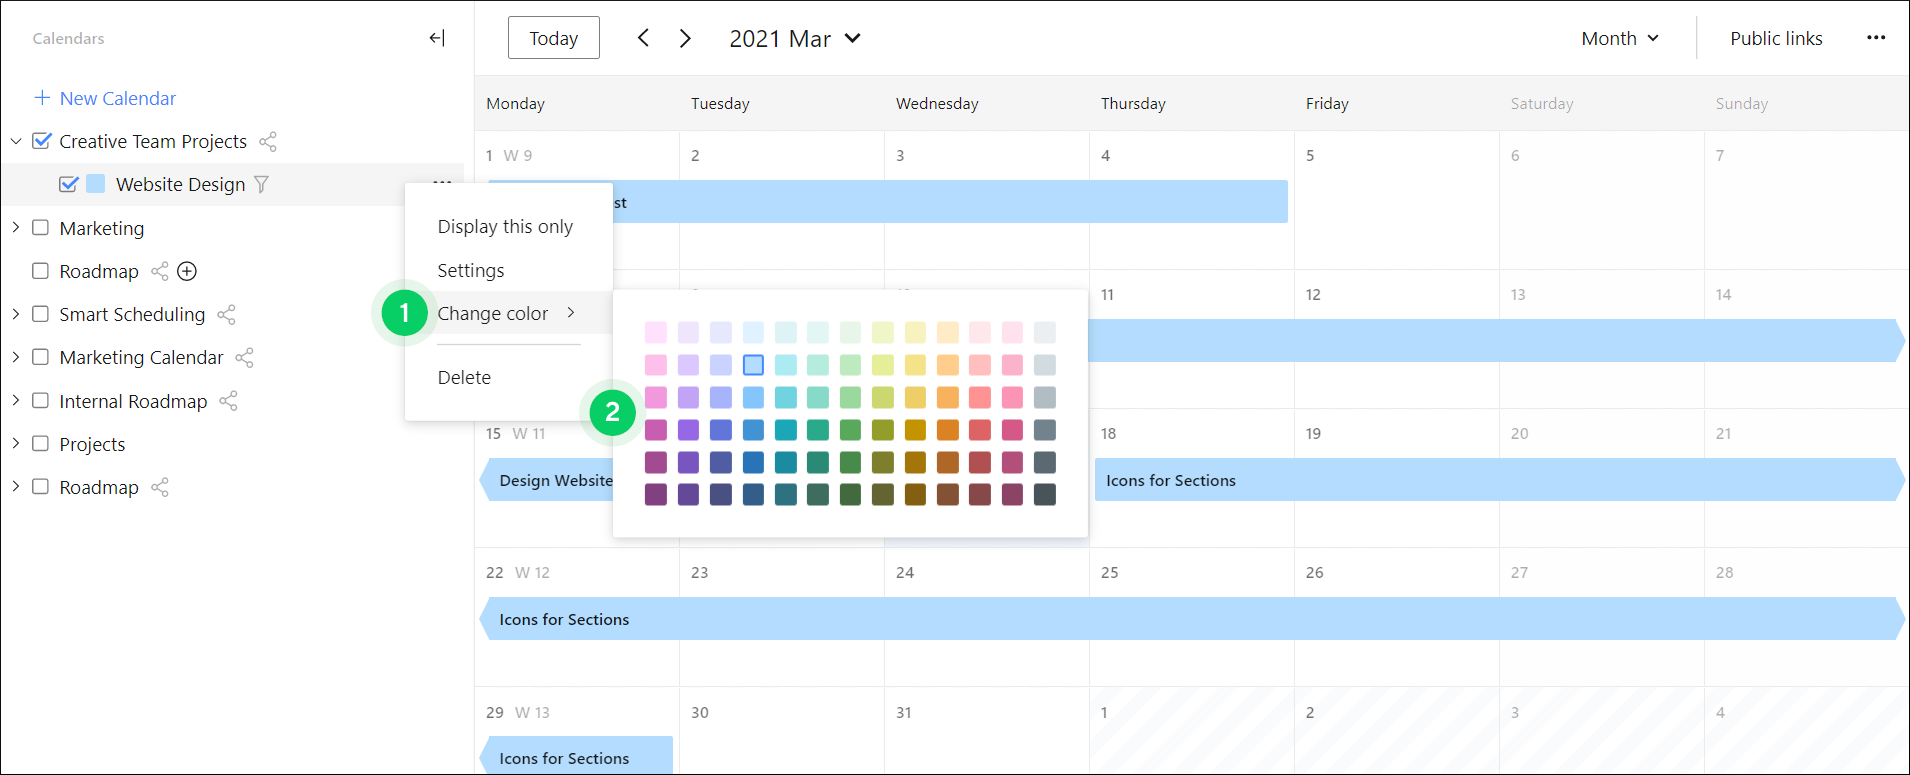 Calendars_-_Change_layer_color.png